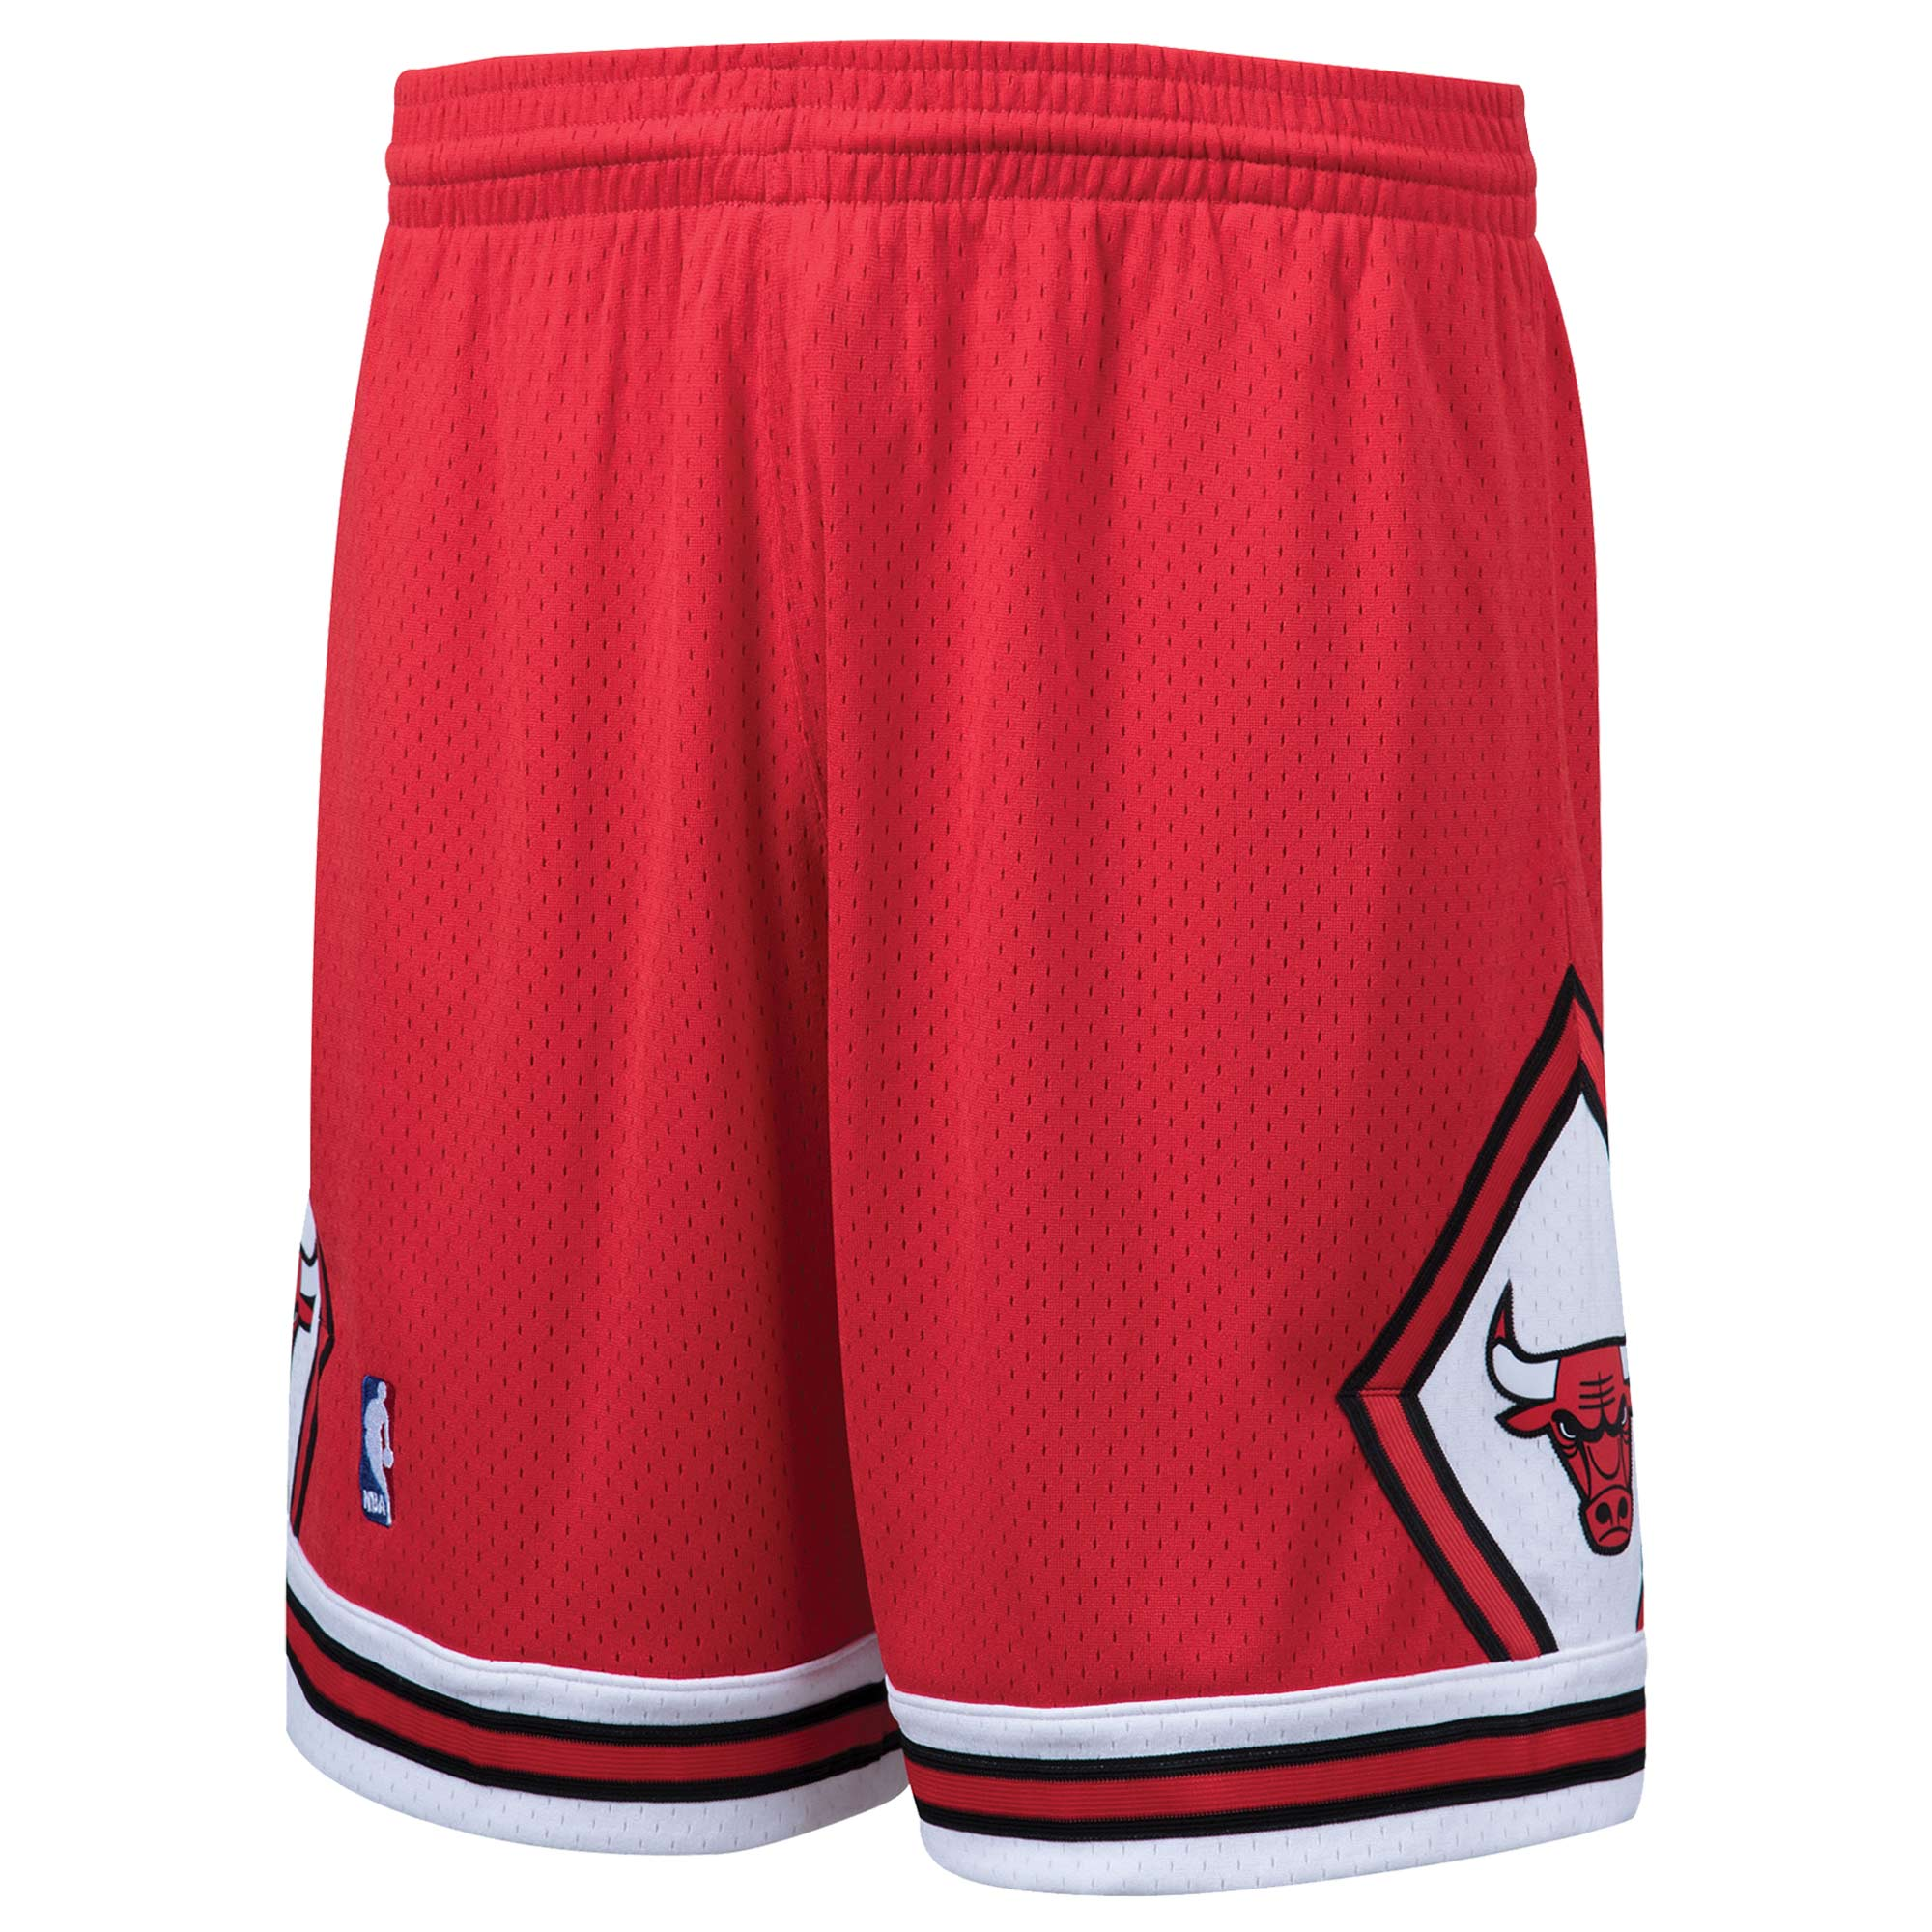 Chicago Bulls Mitchell & Ness Hardwood Classics Swingman Shorts - Red